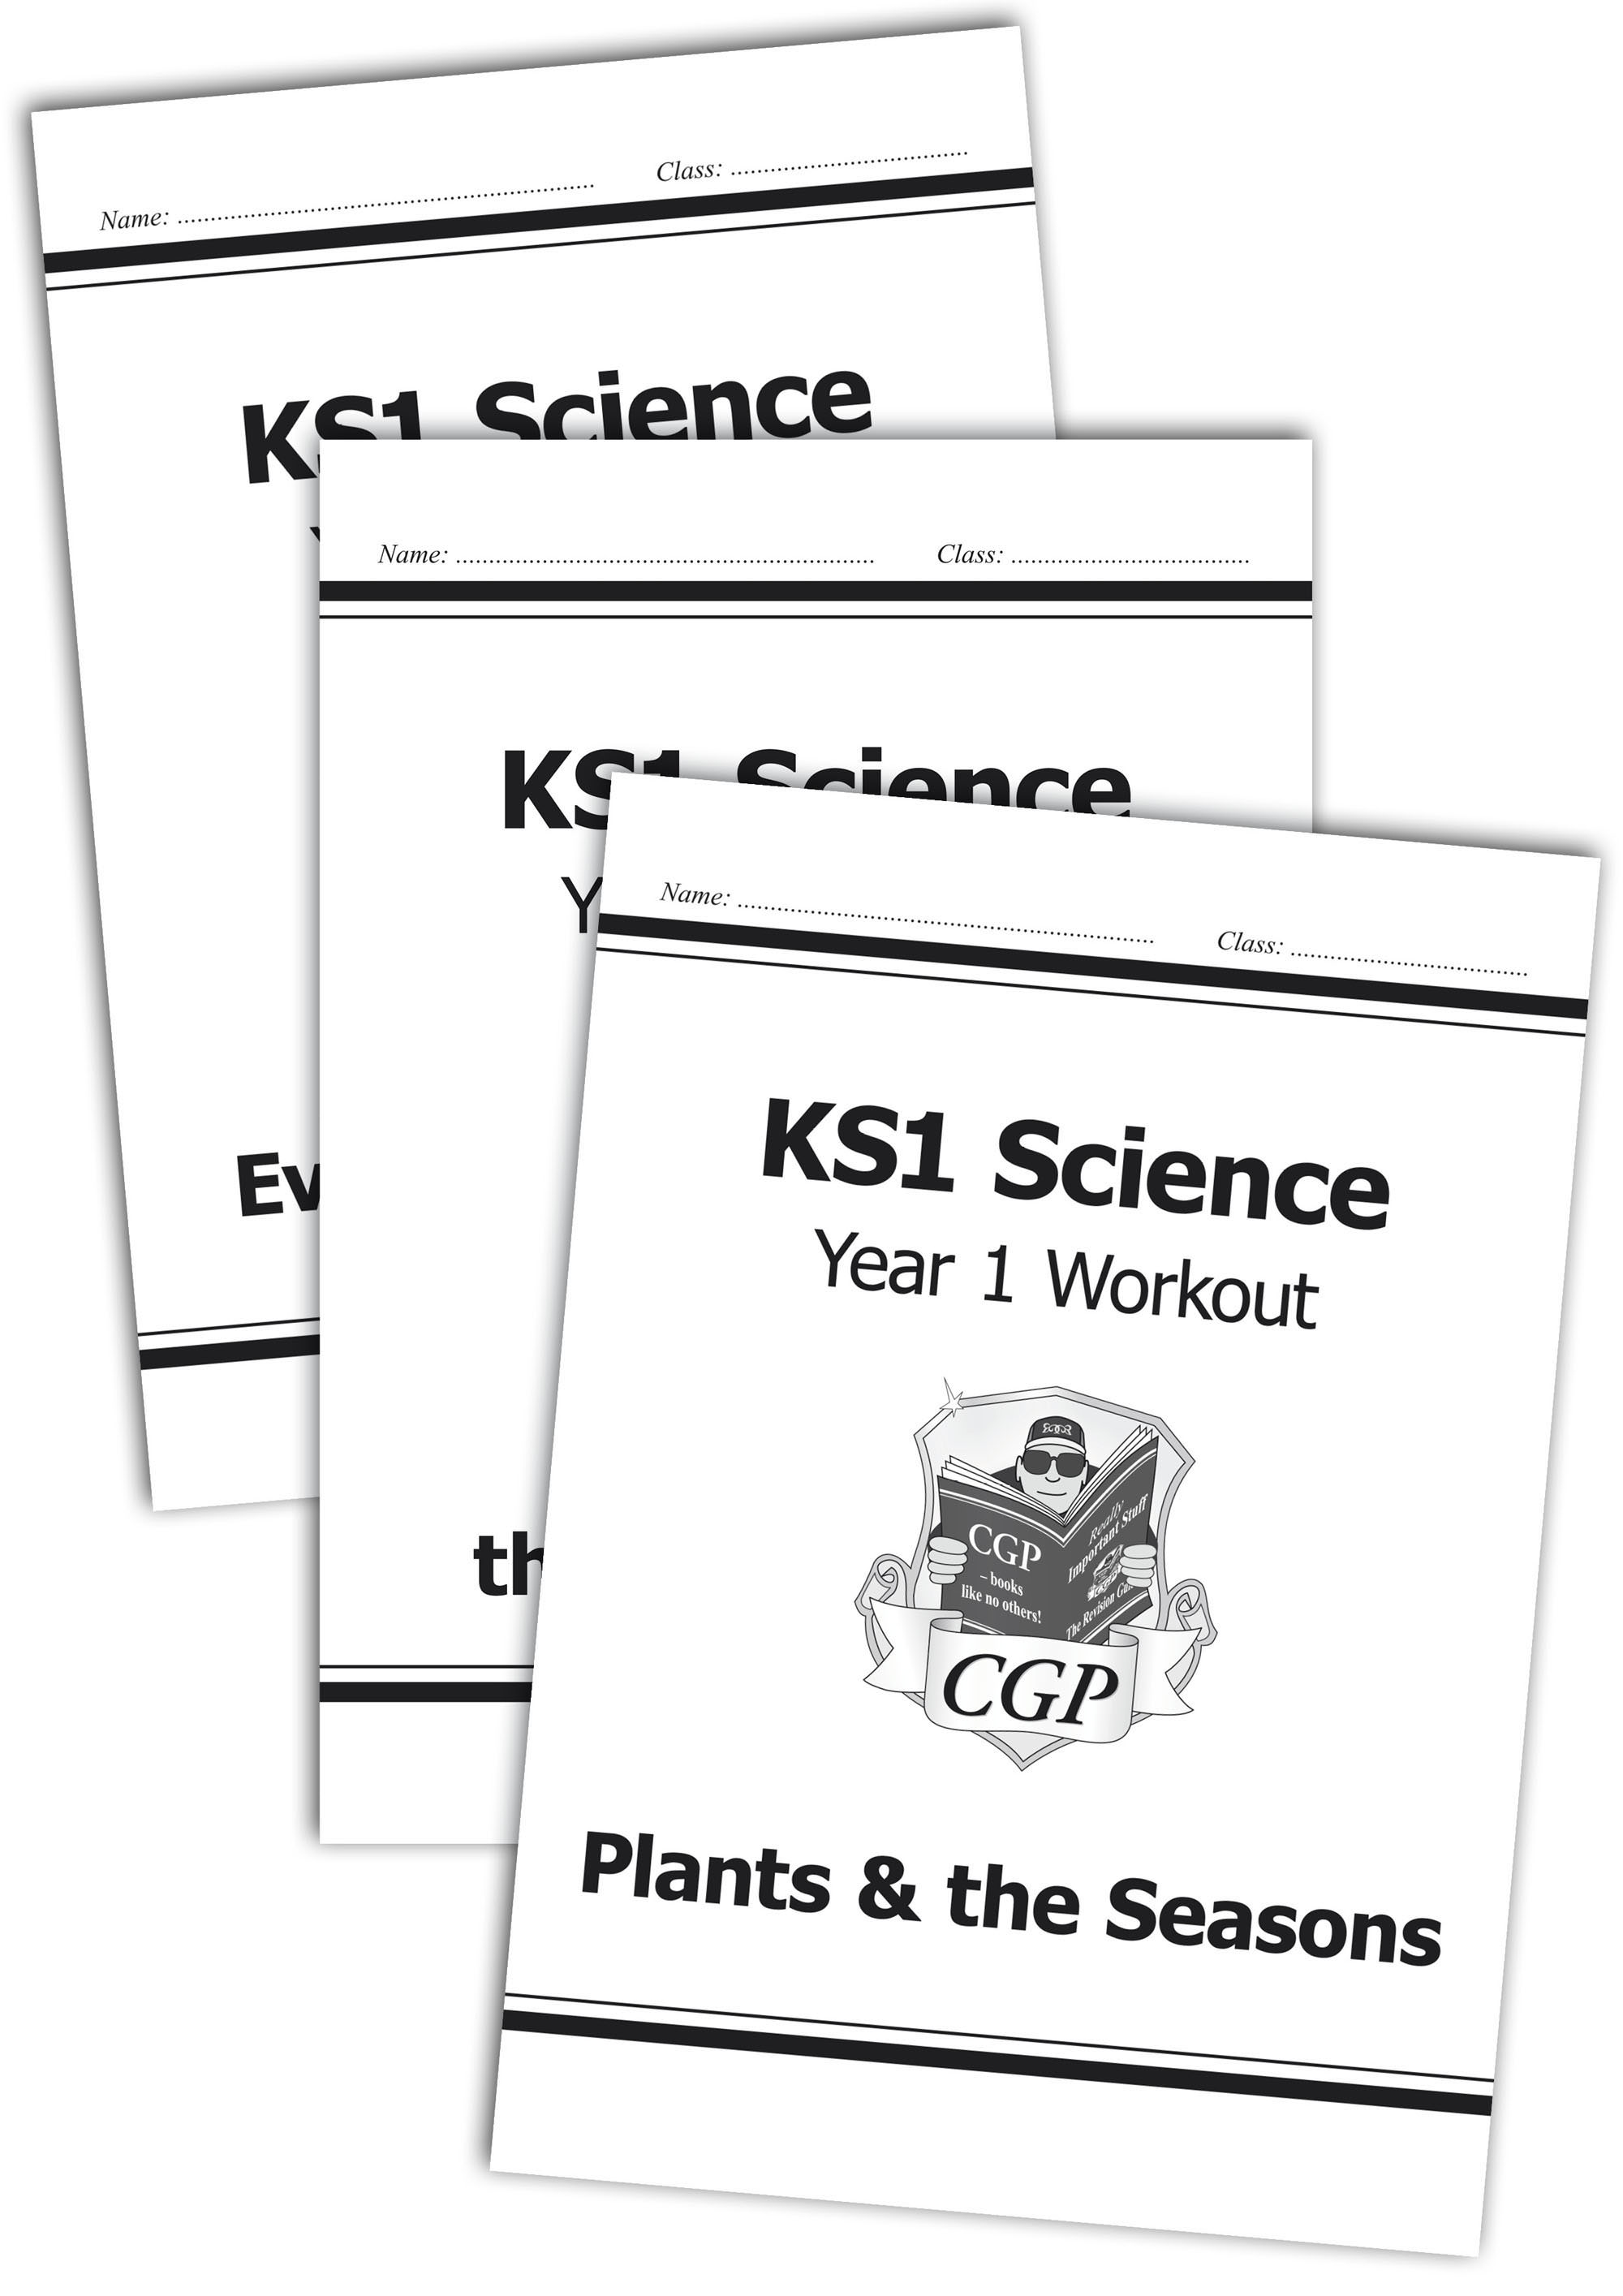 SWB111 - KS1 Science Year 1 Workout Bundle